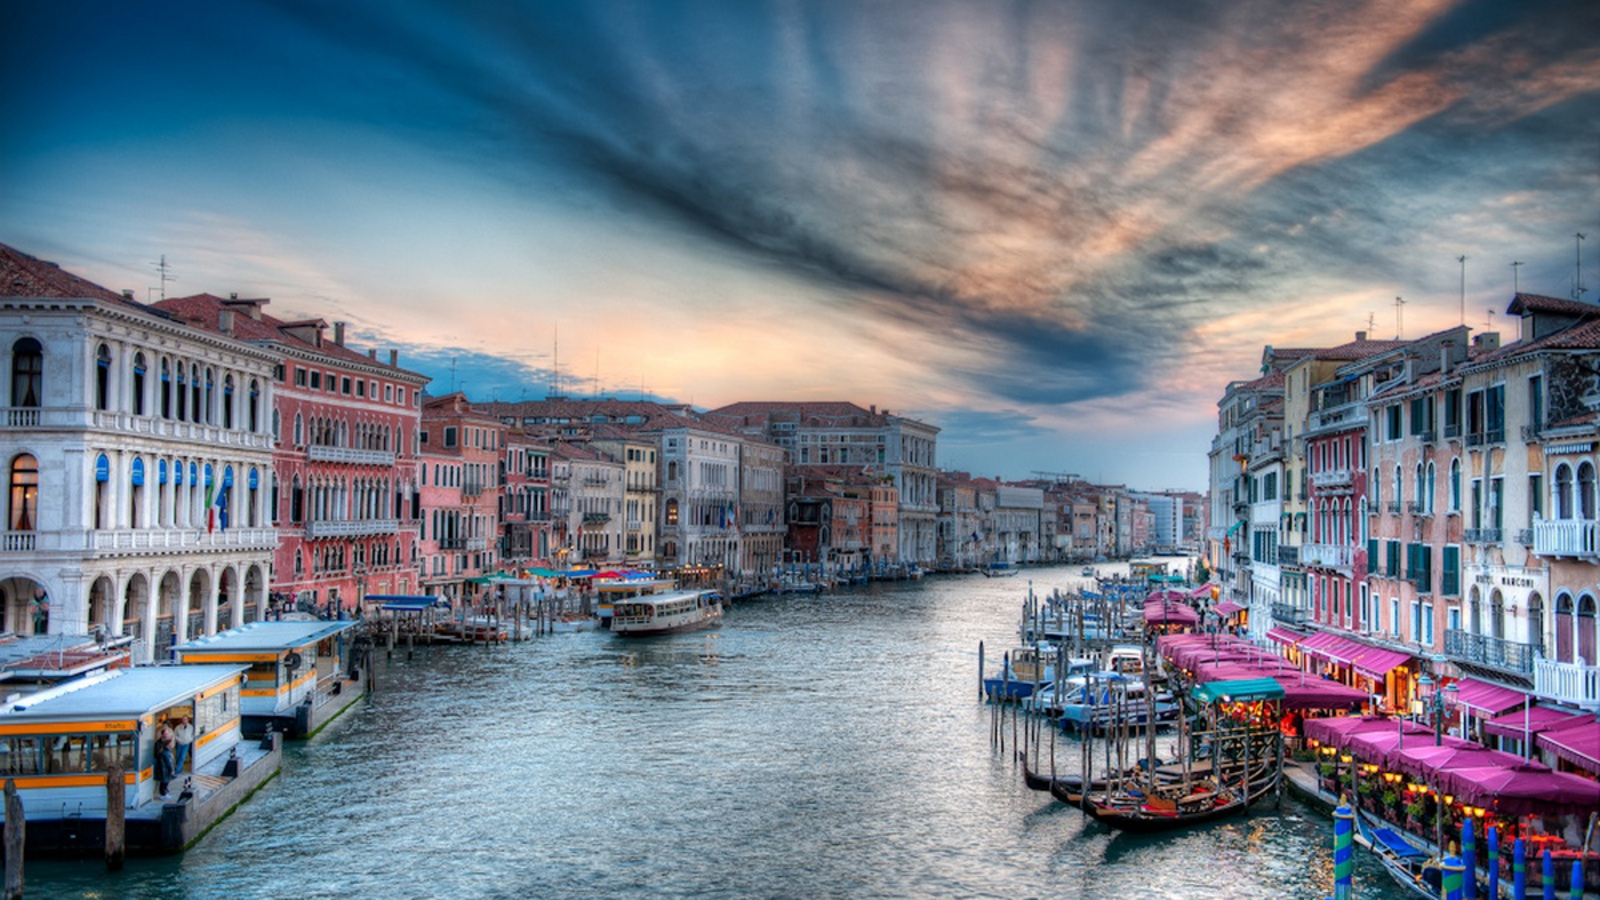 venice italy desktop wallpaper 1600x900